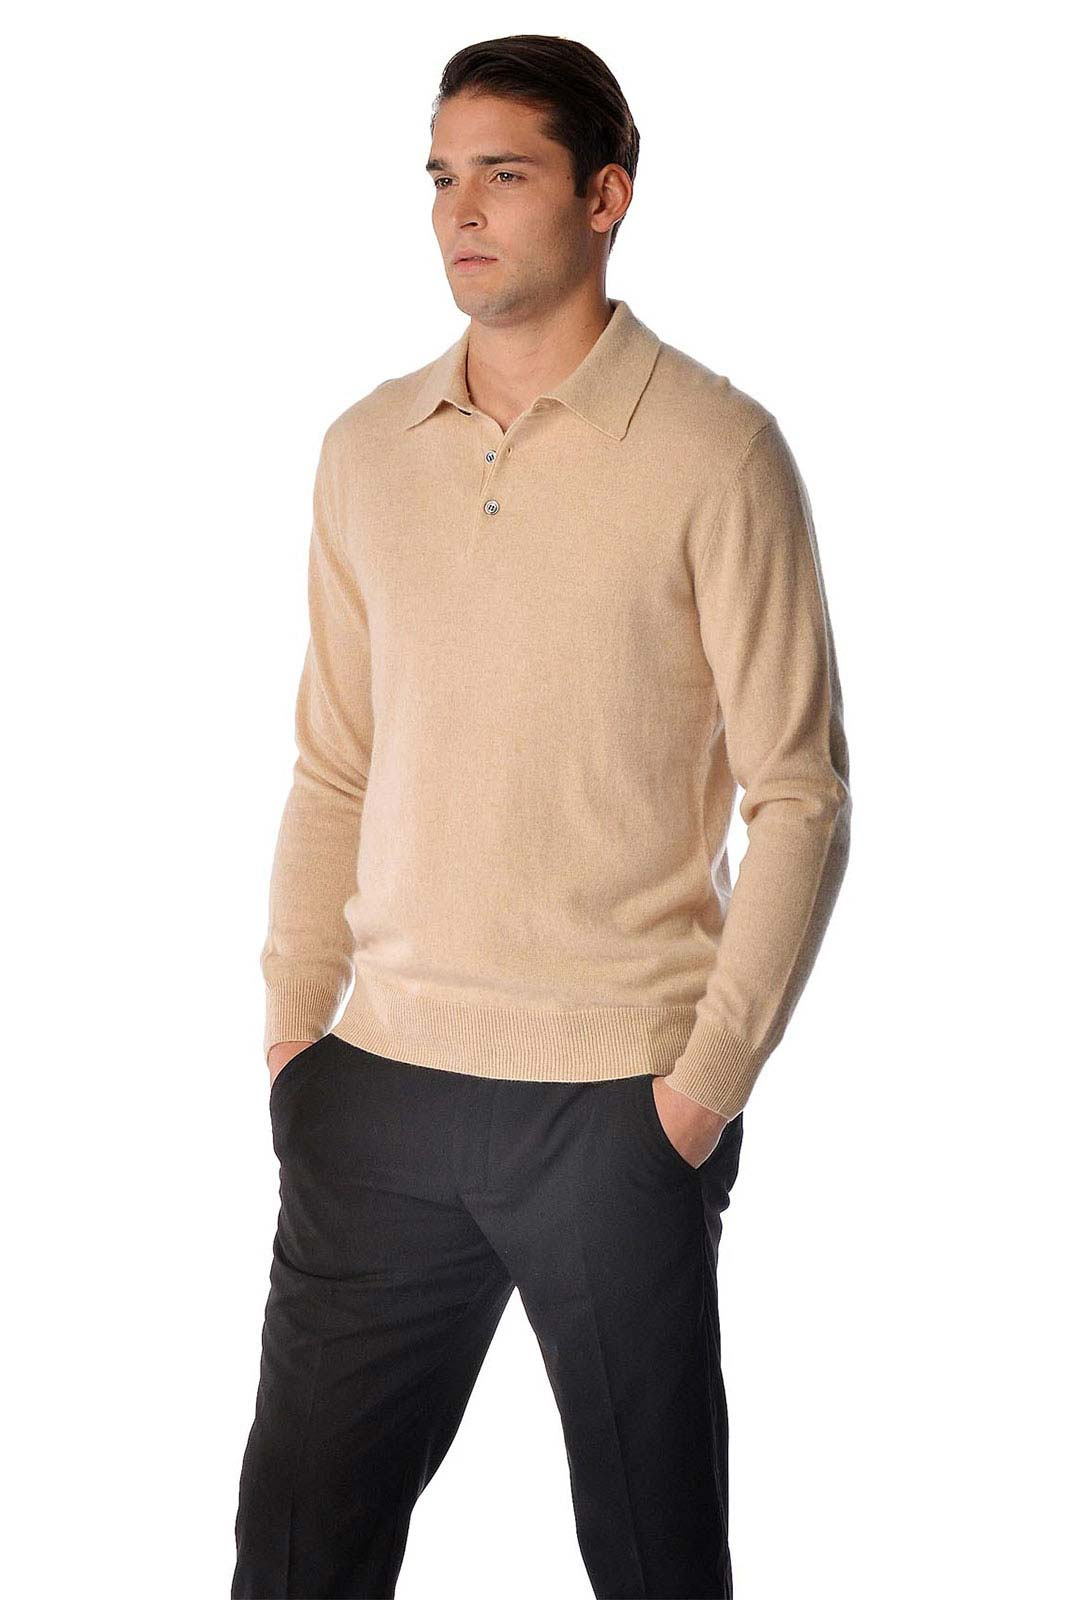 This is a pure cashmere polo sweater for men. Luxurious soft and really warm our sweaters are made from the finest grade of cashmere. These sweaters are made from A-Grade 3 ply pure cashmere yarn and offer unsurpassed warmth and softness.